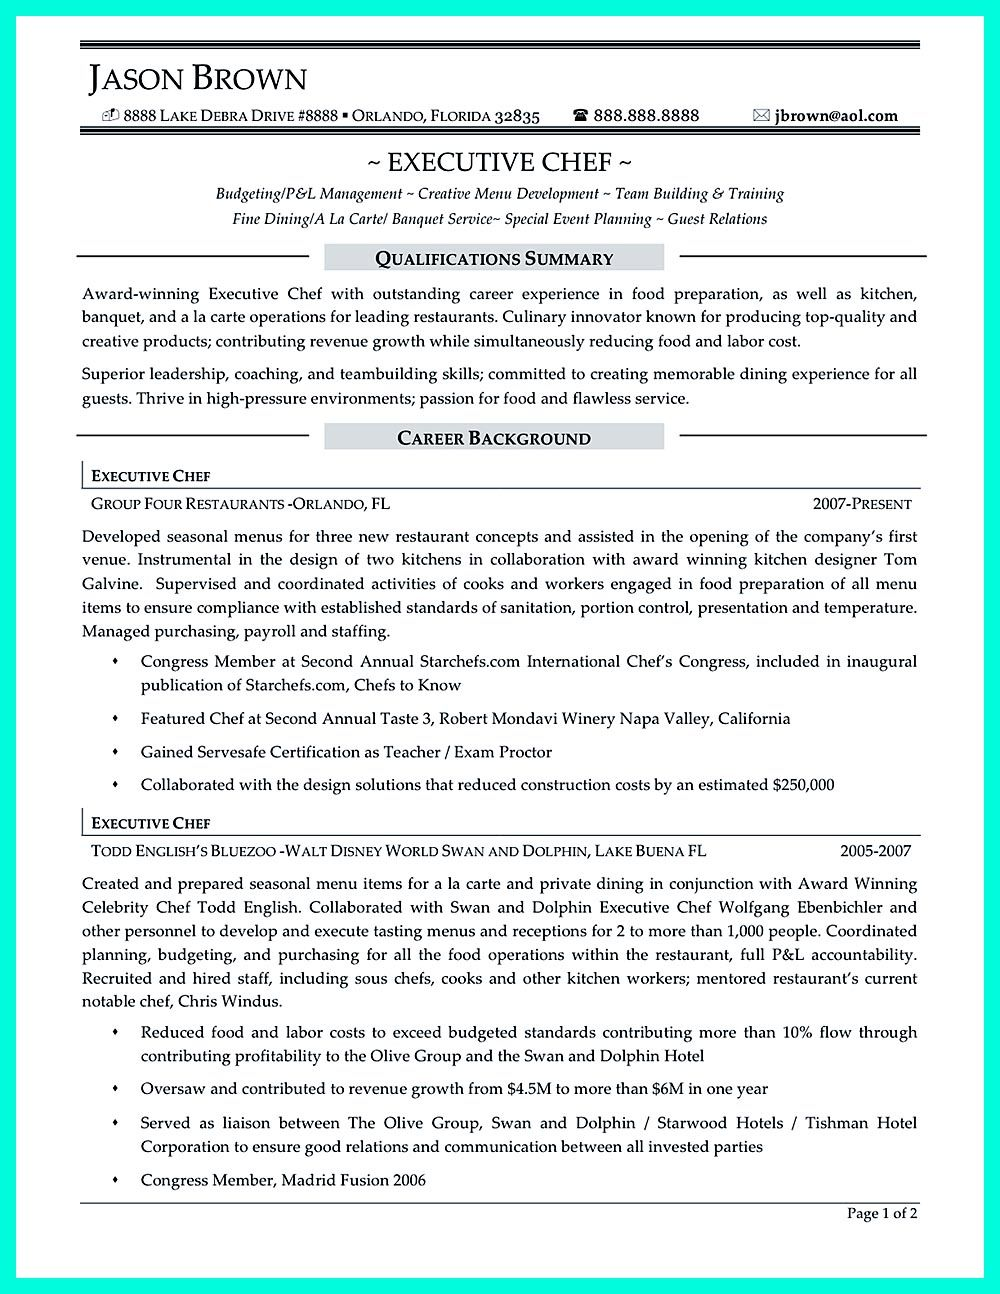 Chef Resumes That Will Impress Your Future Company Chef Resume Resume Writing Services Resume Examples